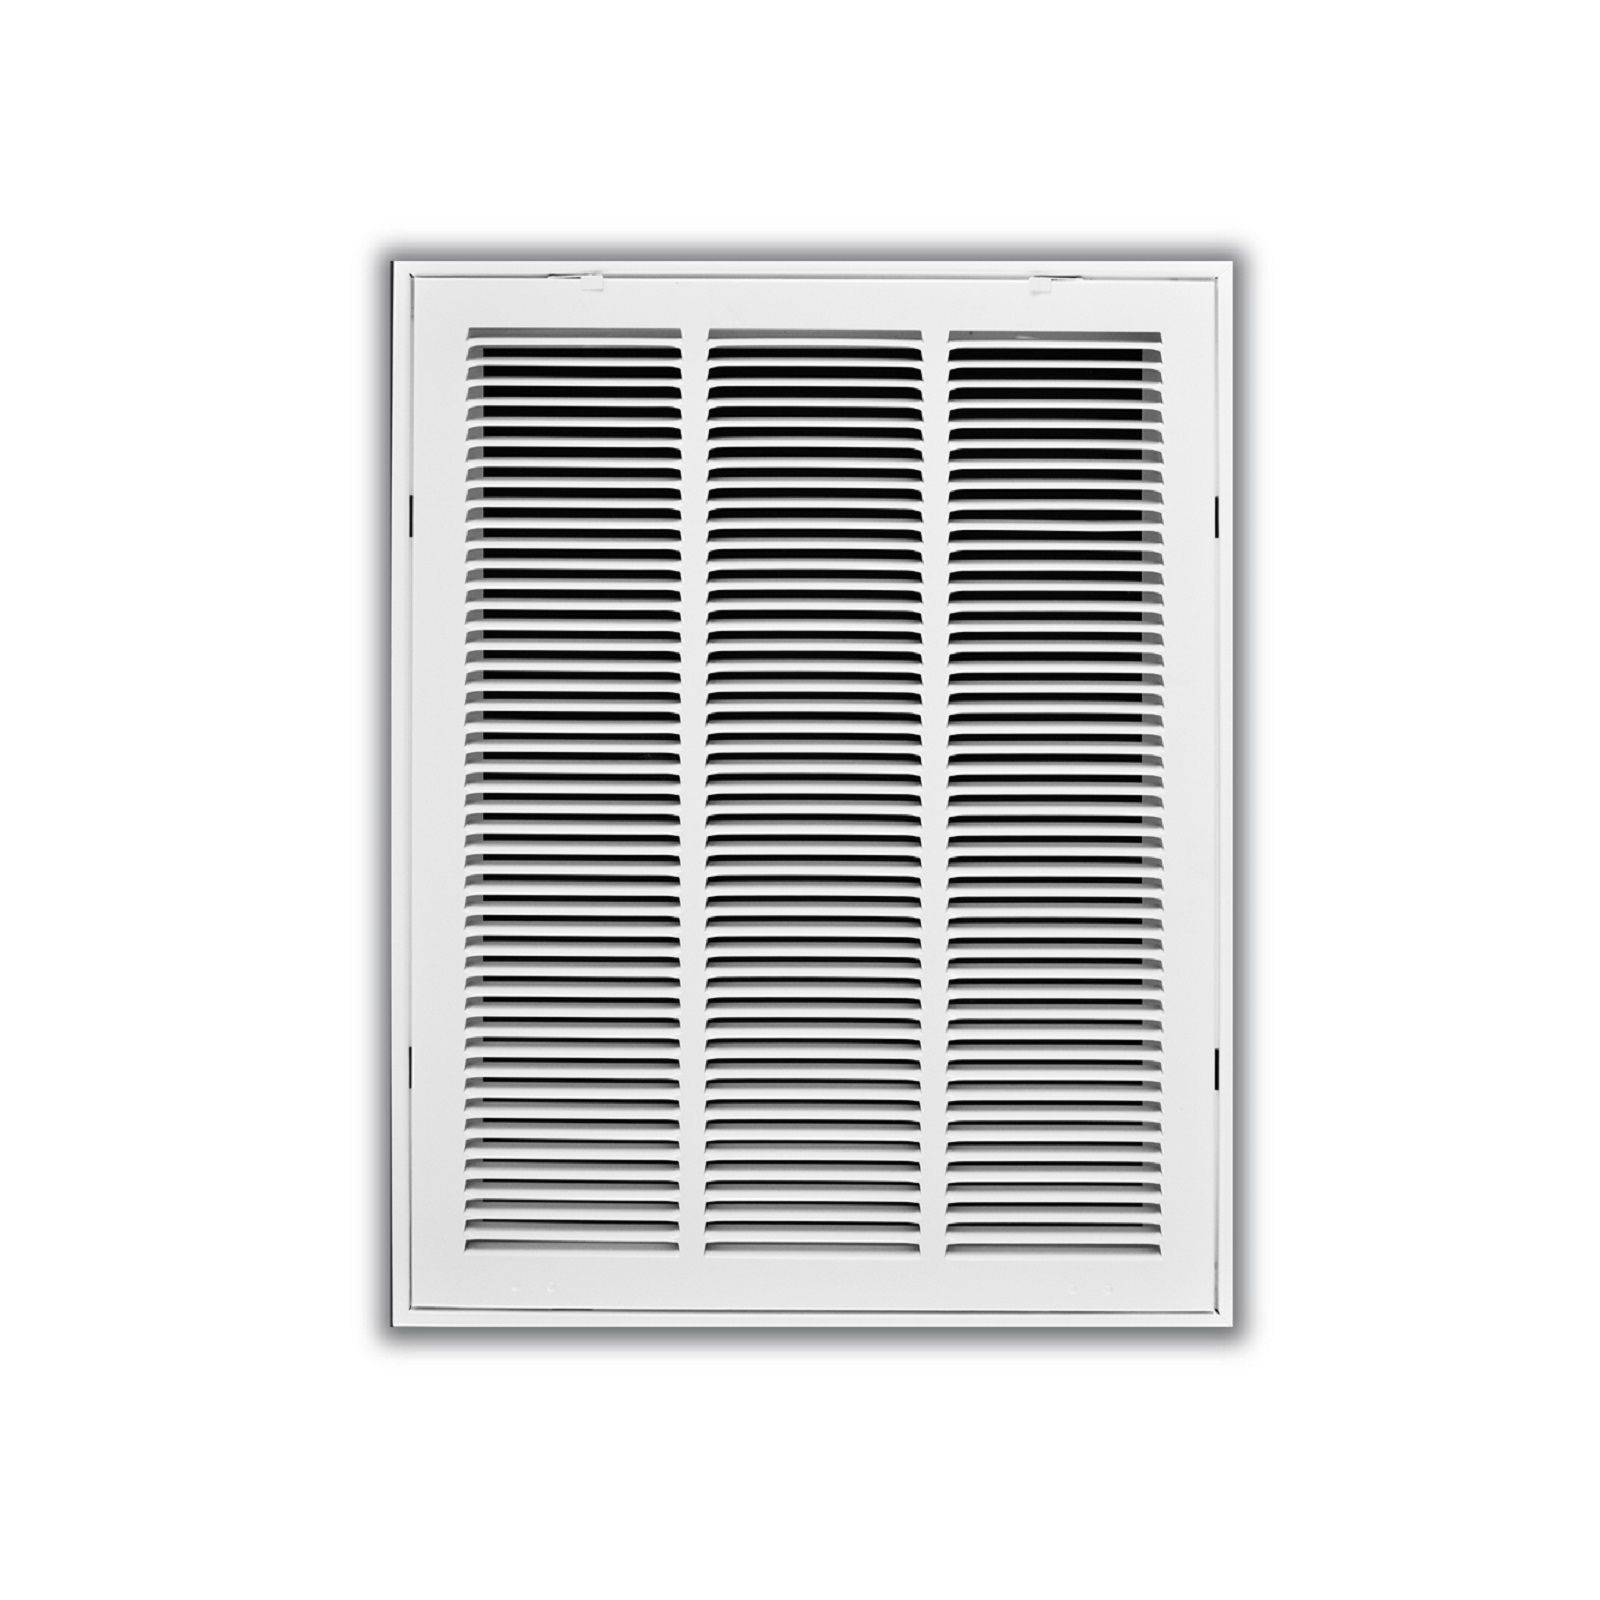 "TRUaire 190 20X25 - Steel Return Air Filter Grille With Fixed Hinged Face, White, 20"" X 25"""